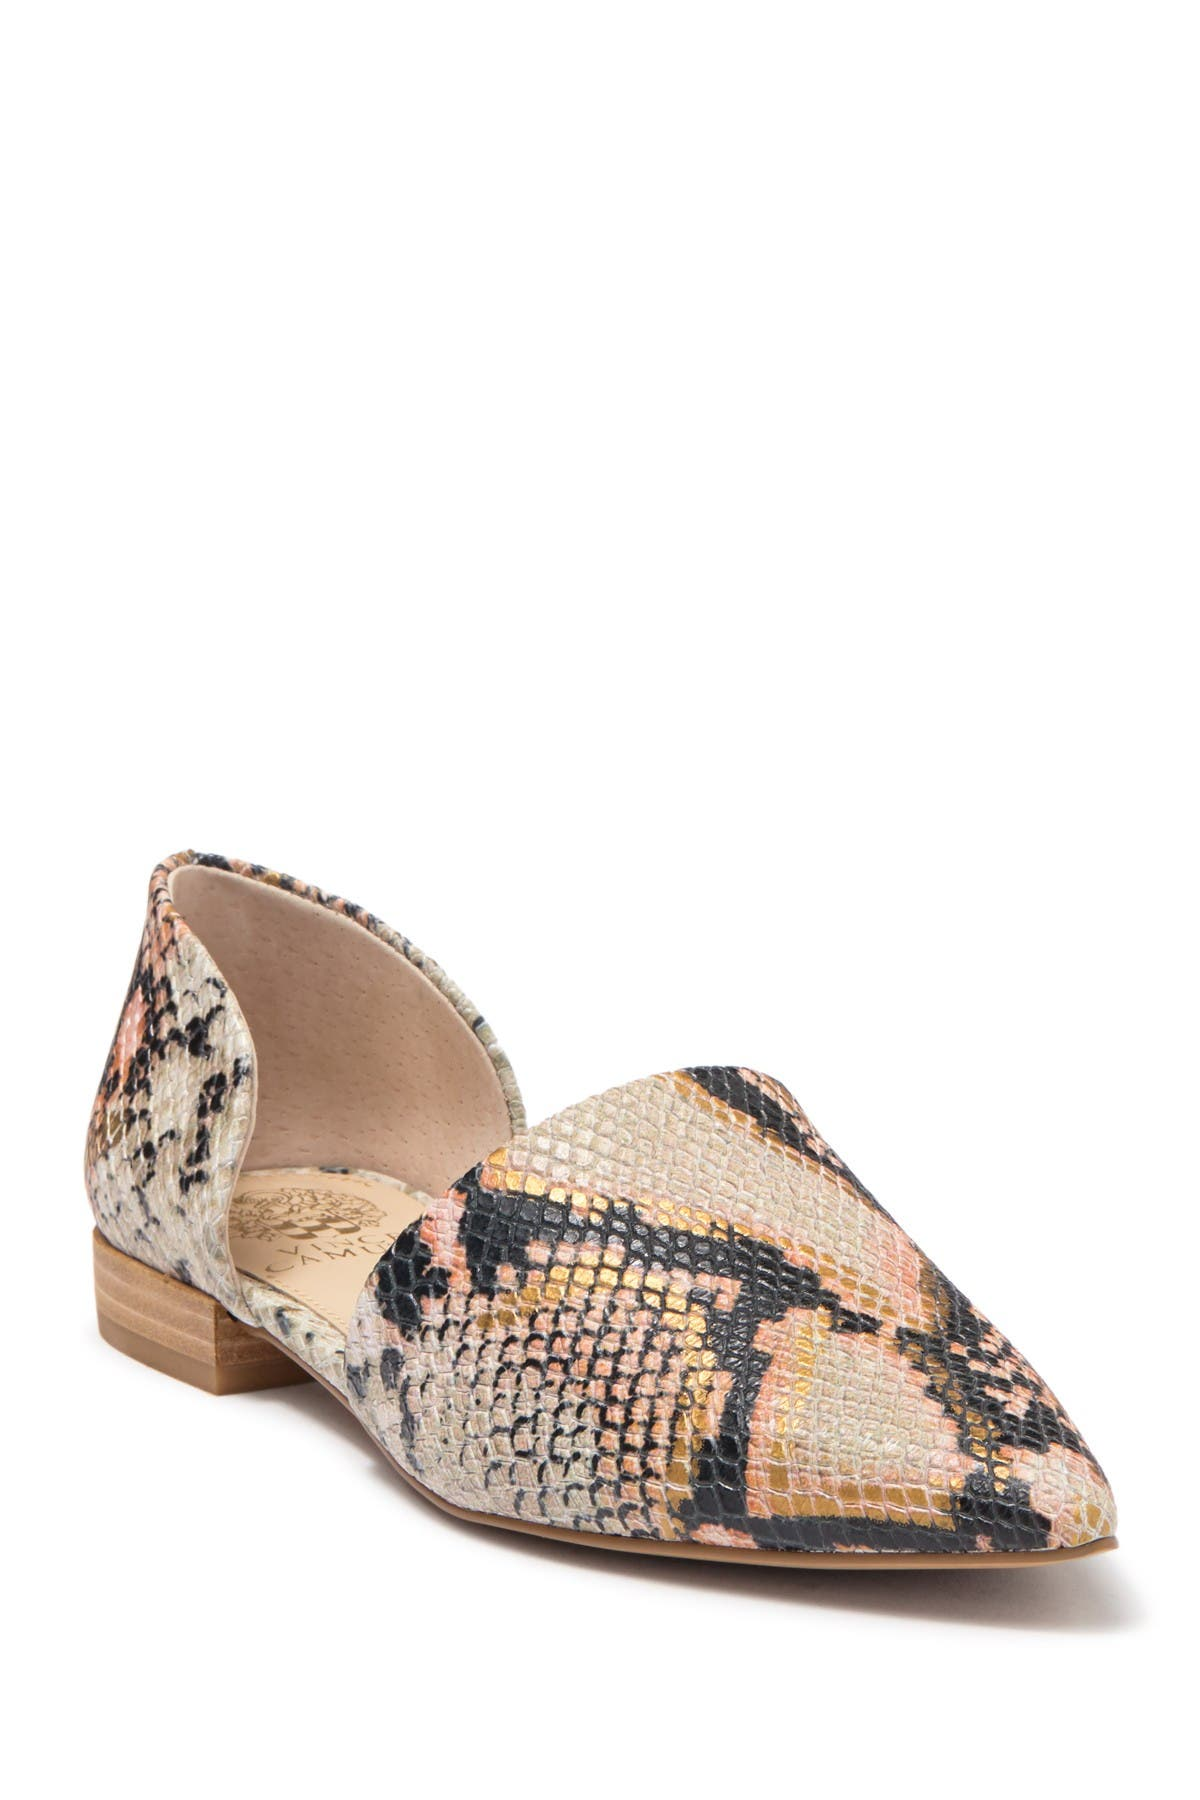 Vince Camuto   Mirarlan Pointed Toe d